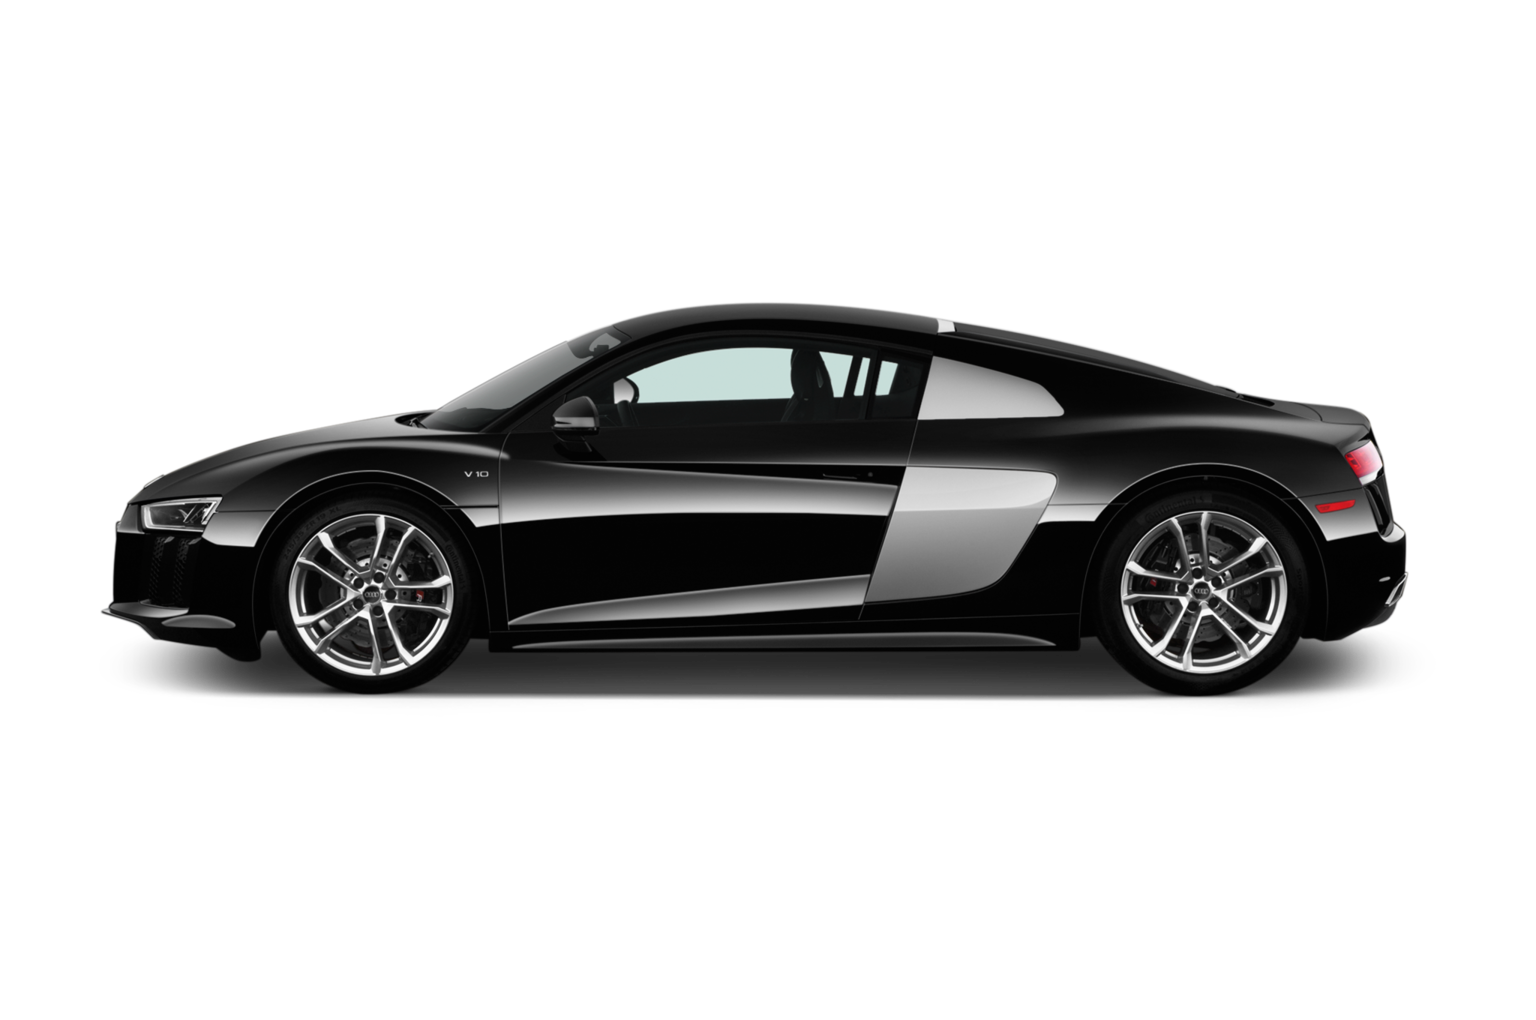 audi r8 spyder 4s9 gebrauchtwagen neuwagen kaufen. Black Bedroom Furniture Sets. Home Design Ideas